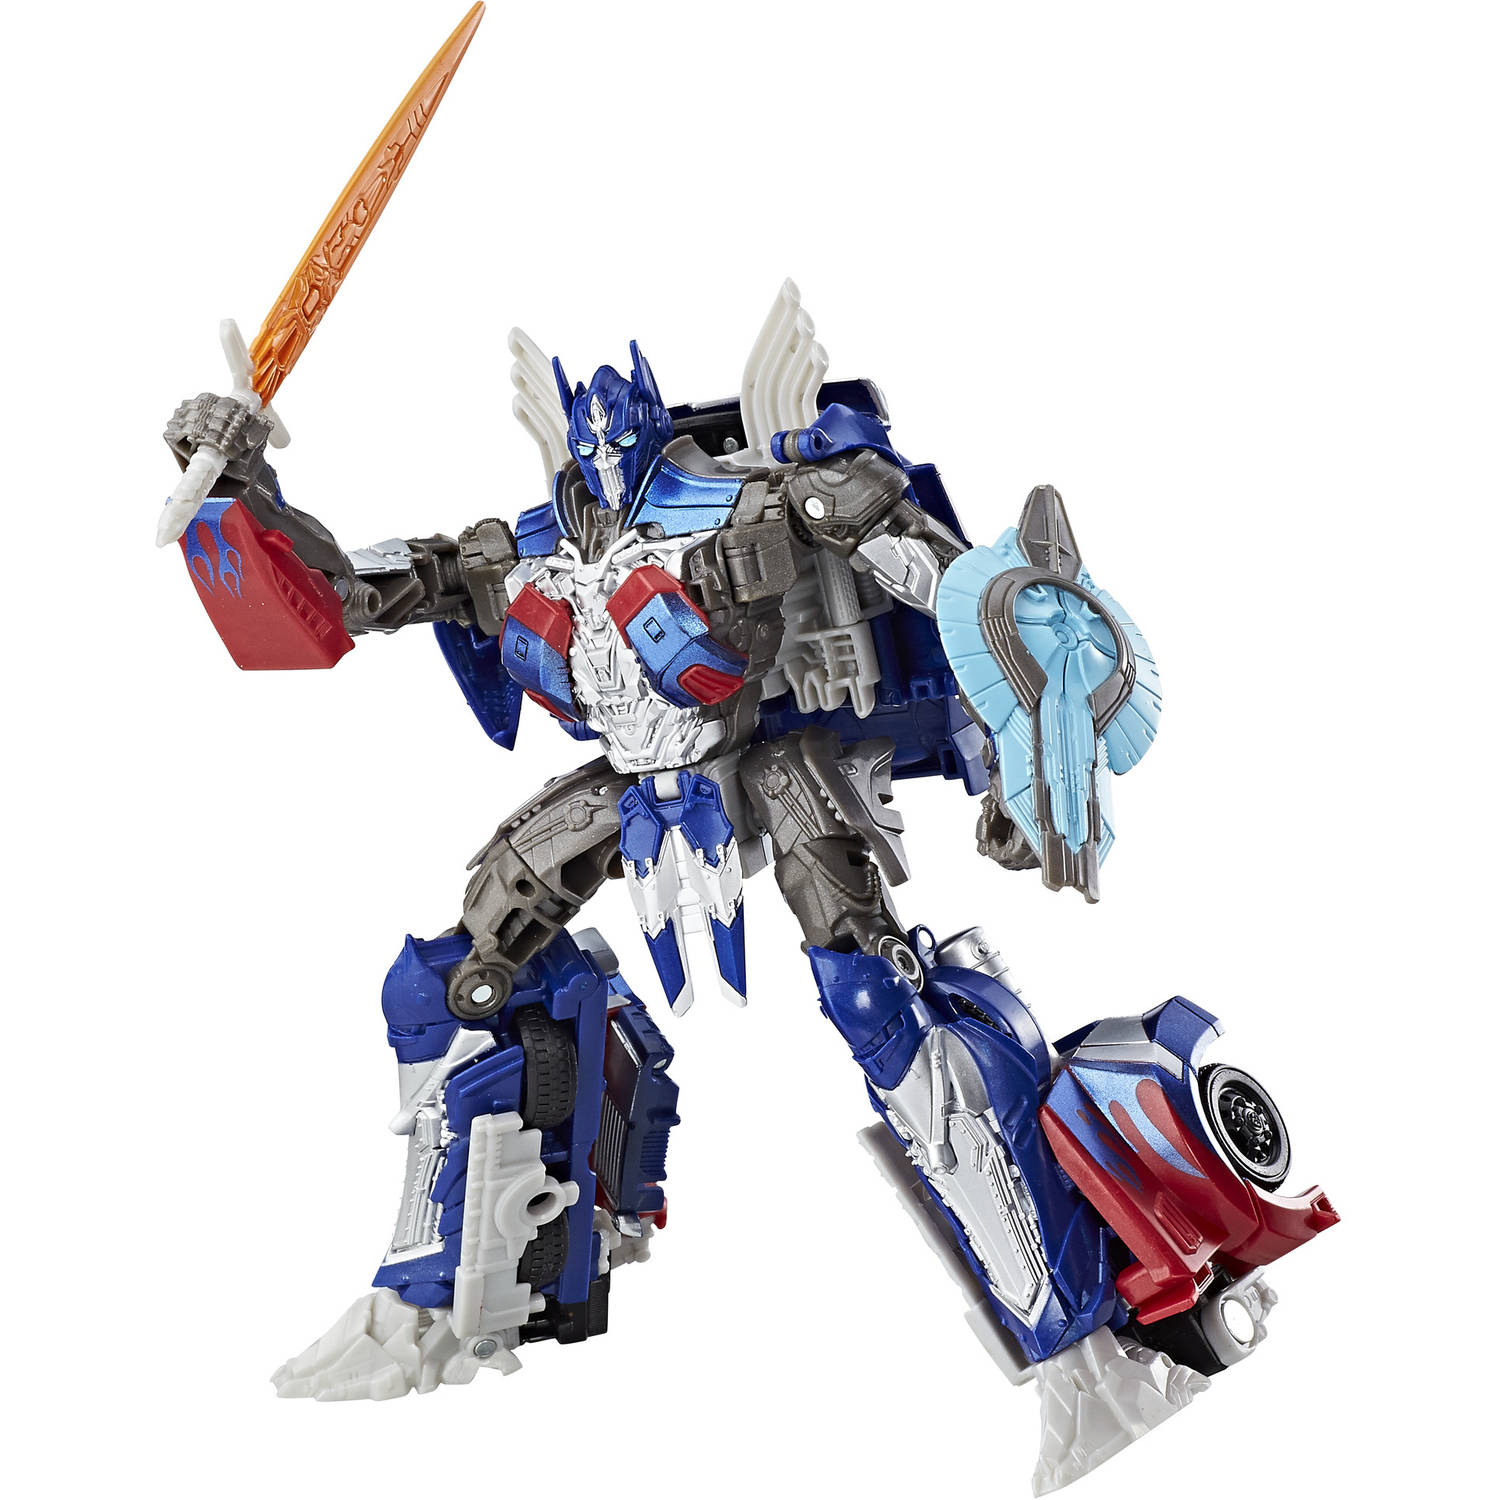 Transformers: The Last Knight Premier Edition Voyager Class Optimus Prime by Hasbro